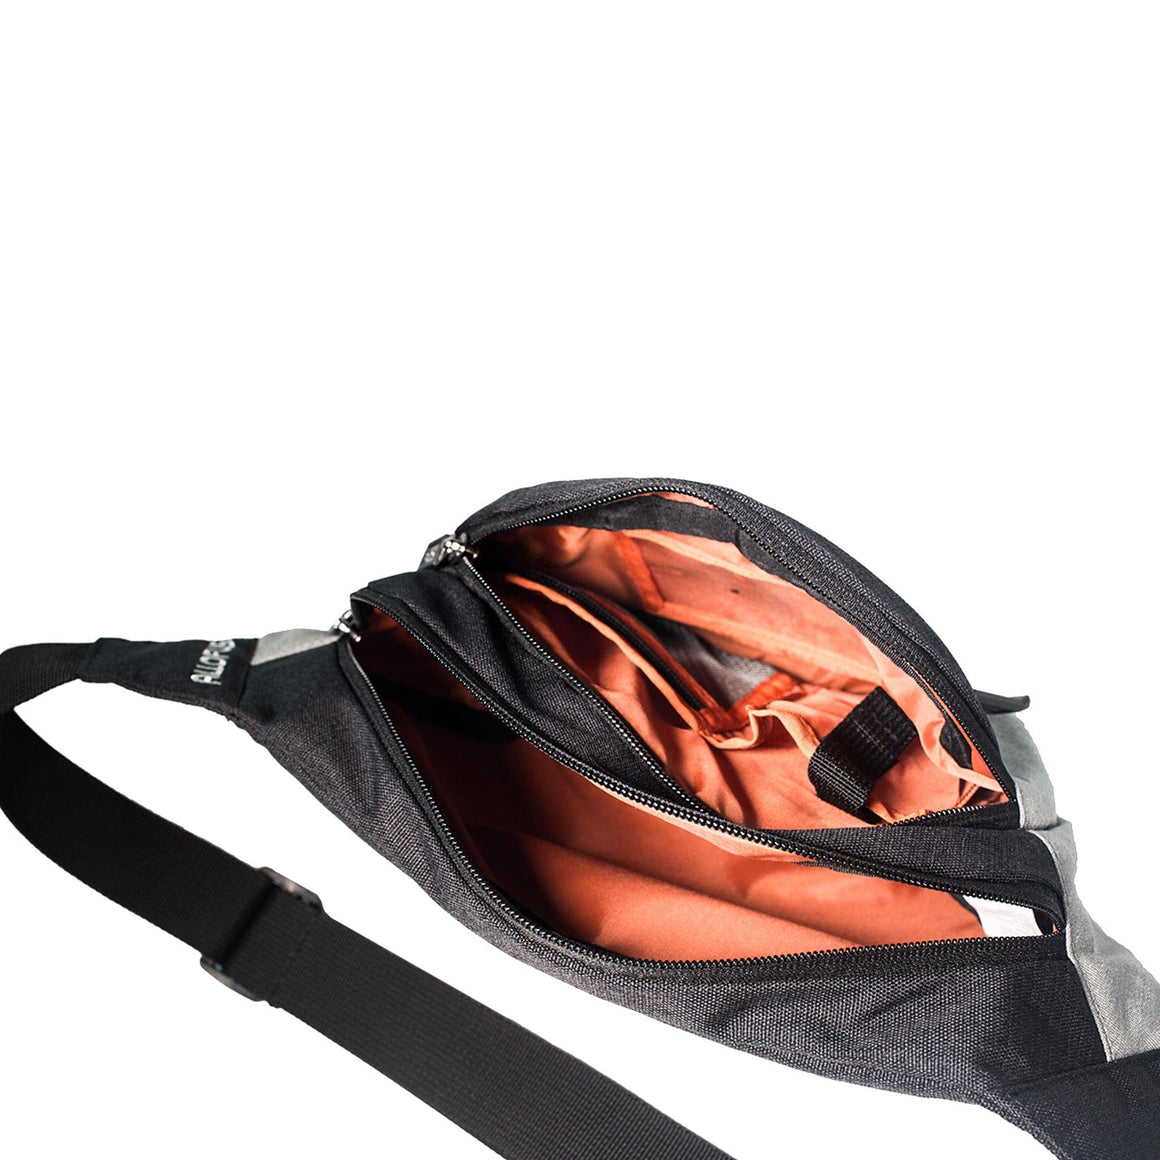 Wolf Pack Waist Pack / Sling Bag - Grey